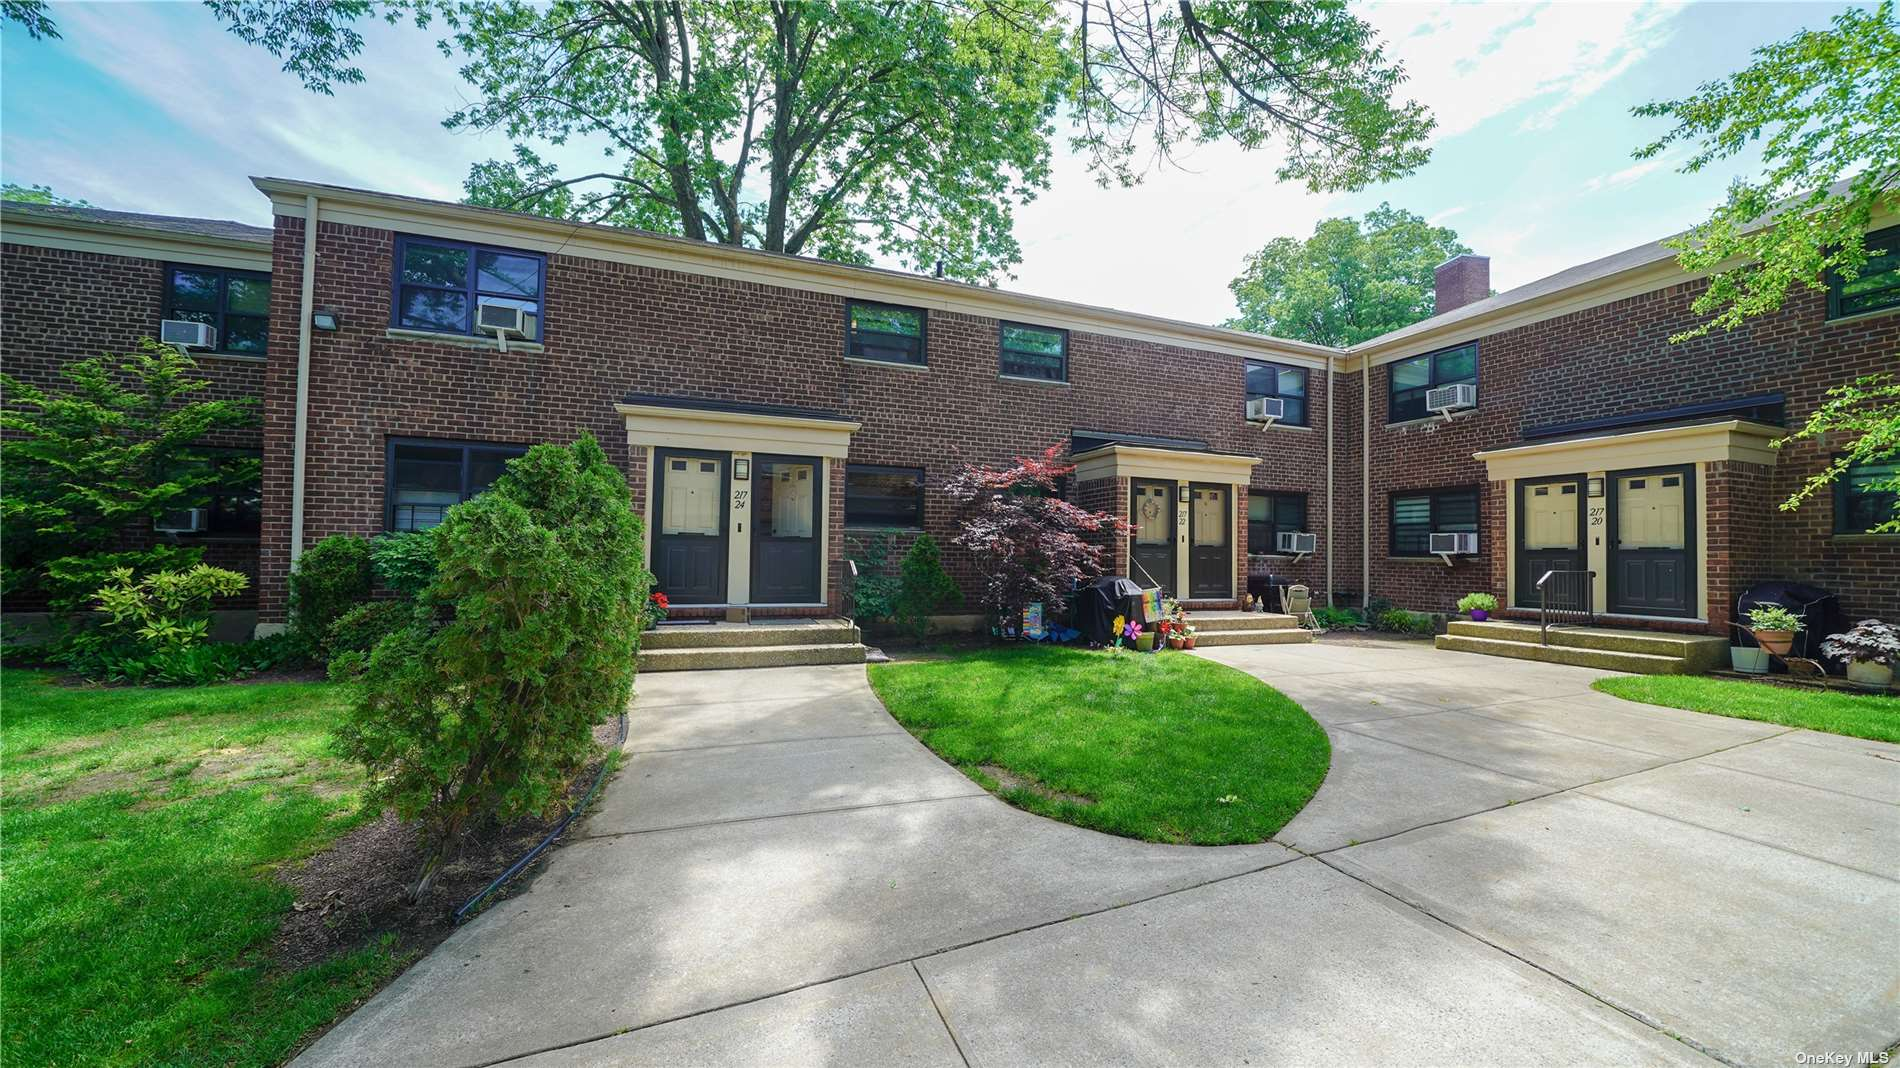 Nice updated upper unit in the heart of Bayside's Windsor Oaks. Oaks. Setback in a beautiful courtyard, this  unit Features Living Room, DIning Area, 2 Bedrooms, and Full Bath. Close to Schools, Shopping and Transportation.